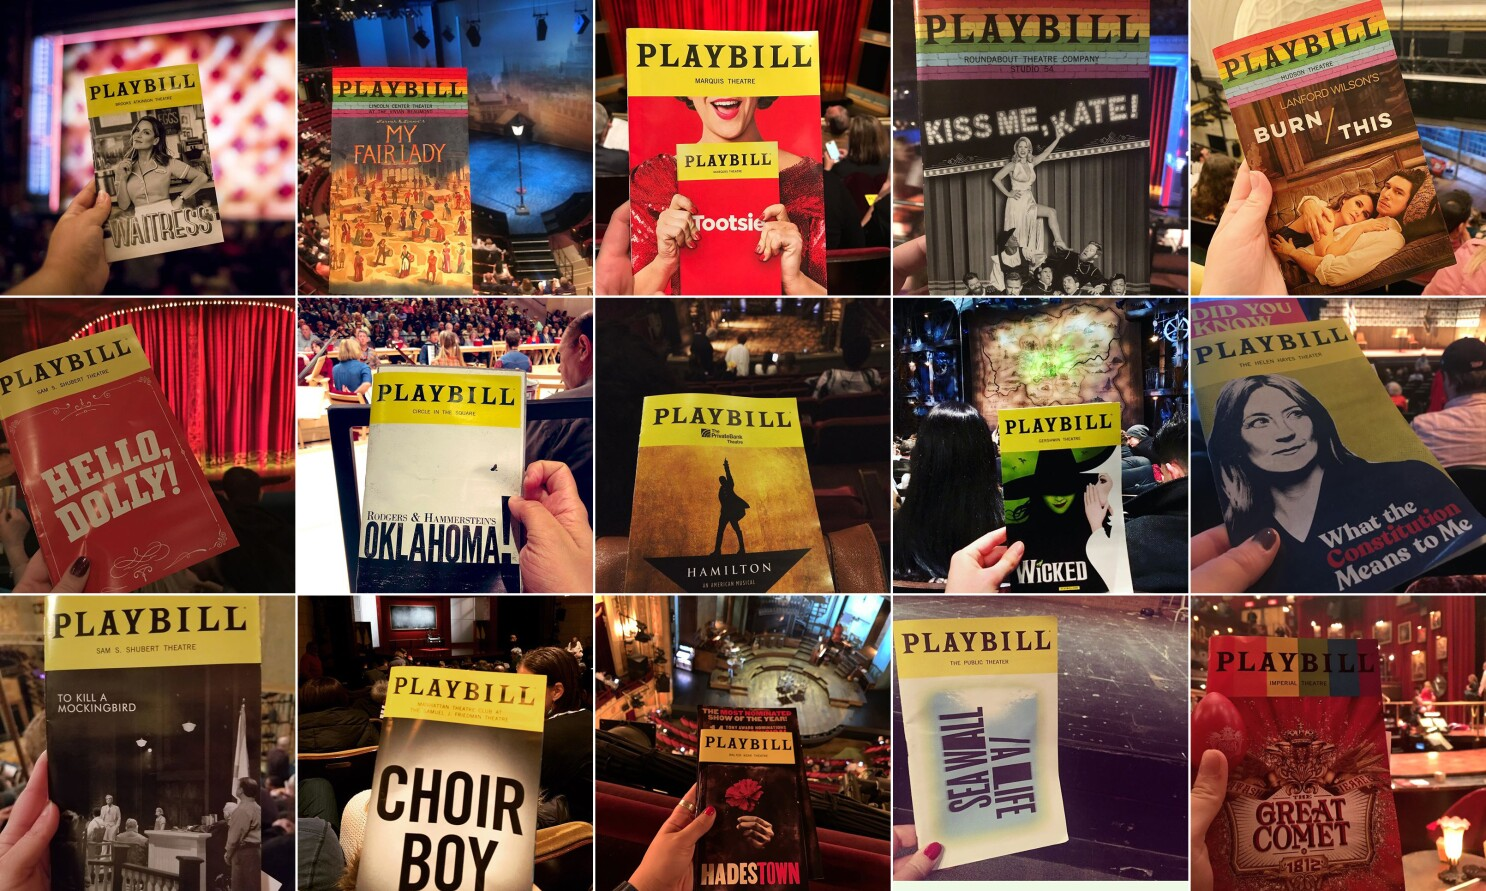 How Playbills became social media must-shares